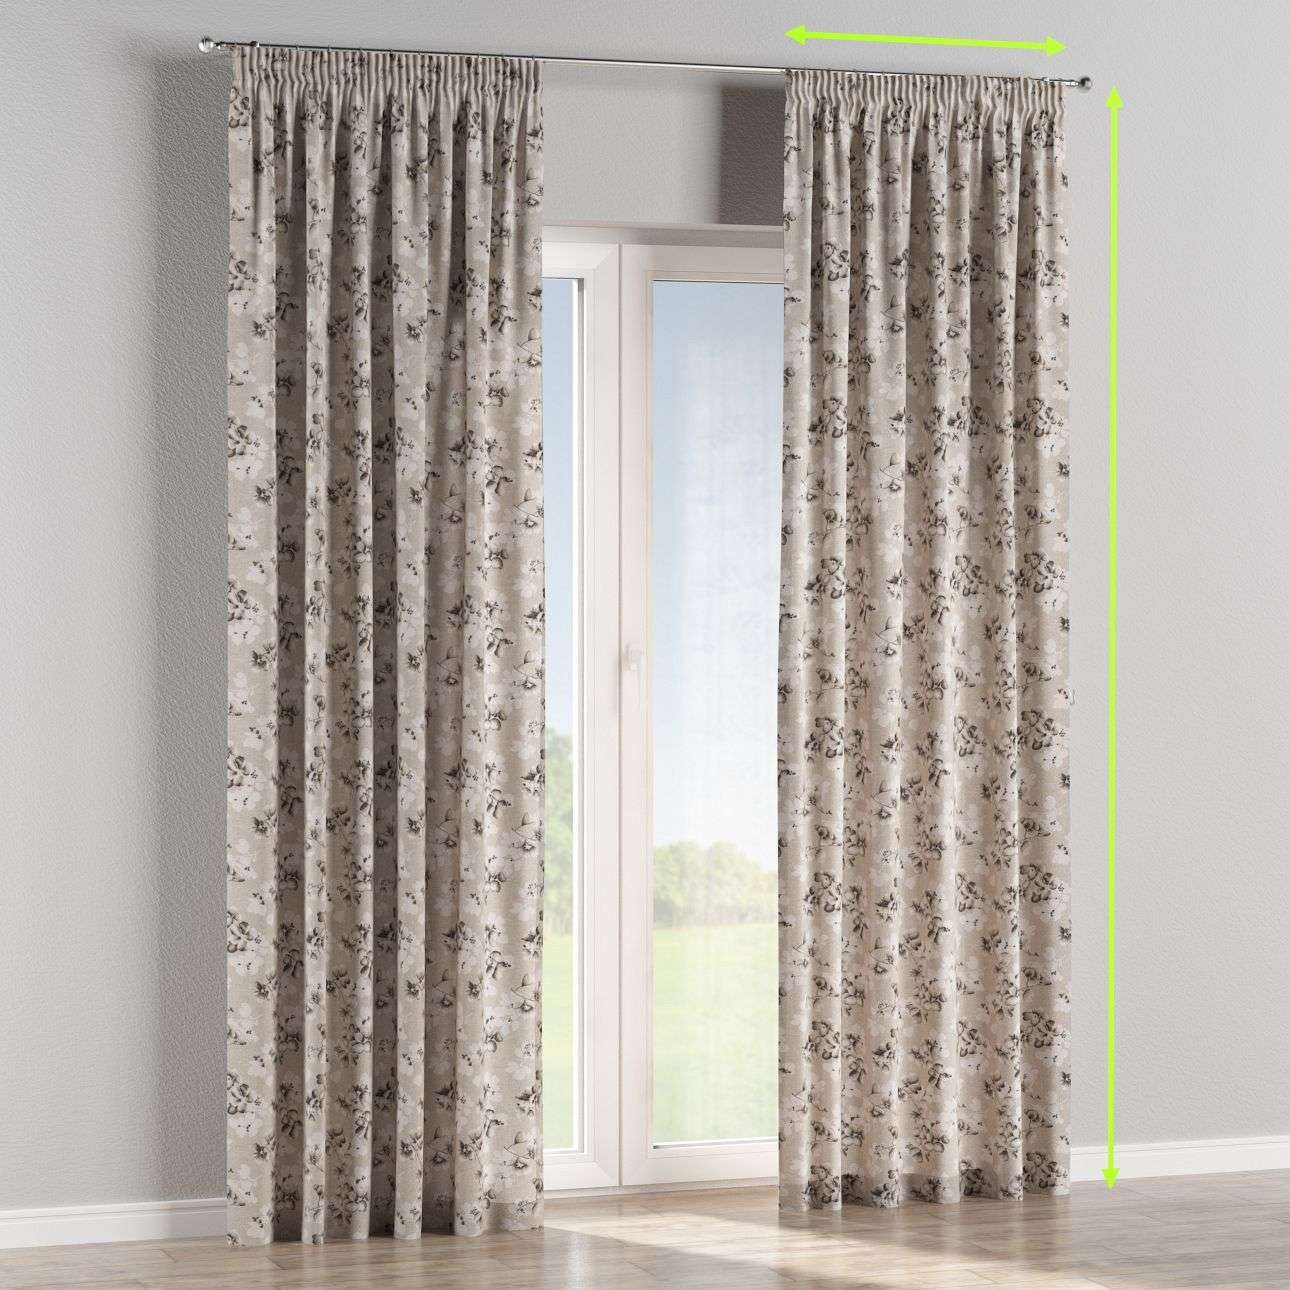 Pencil pleat curtains in collection Rustica, fabric: 138-14